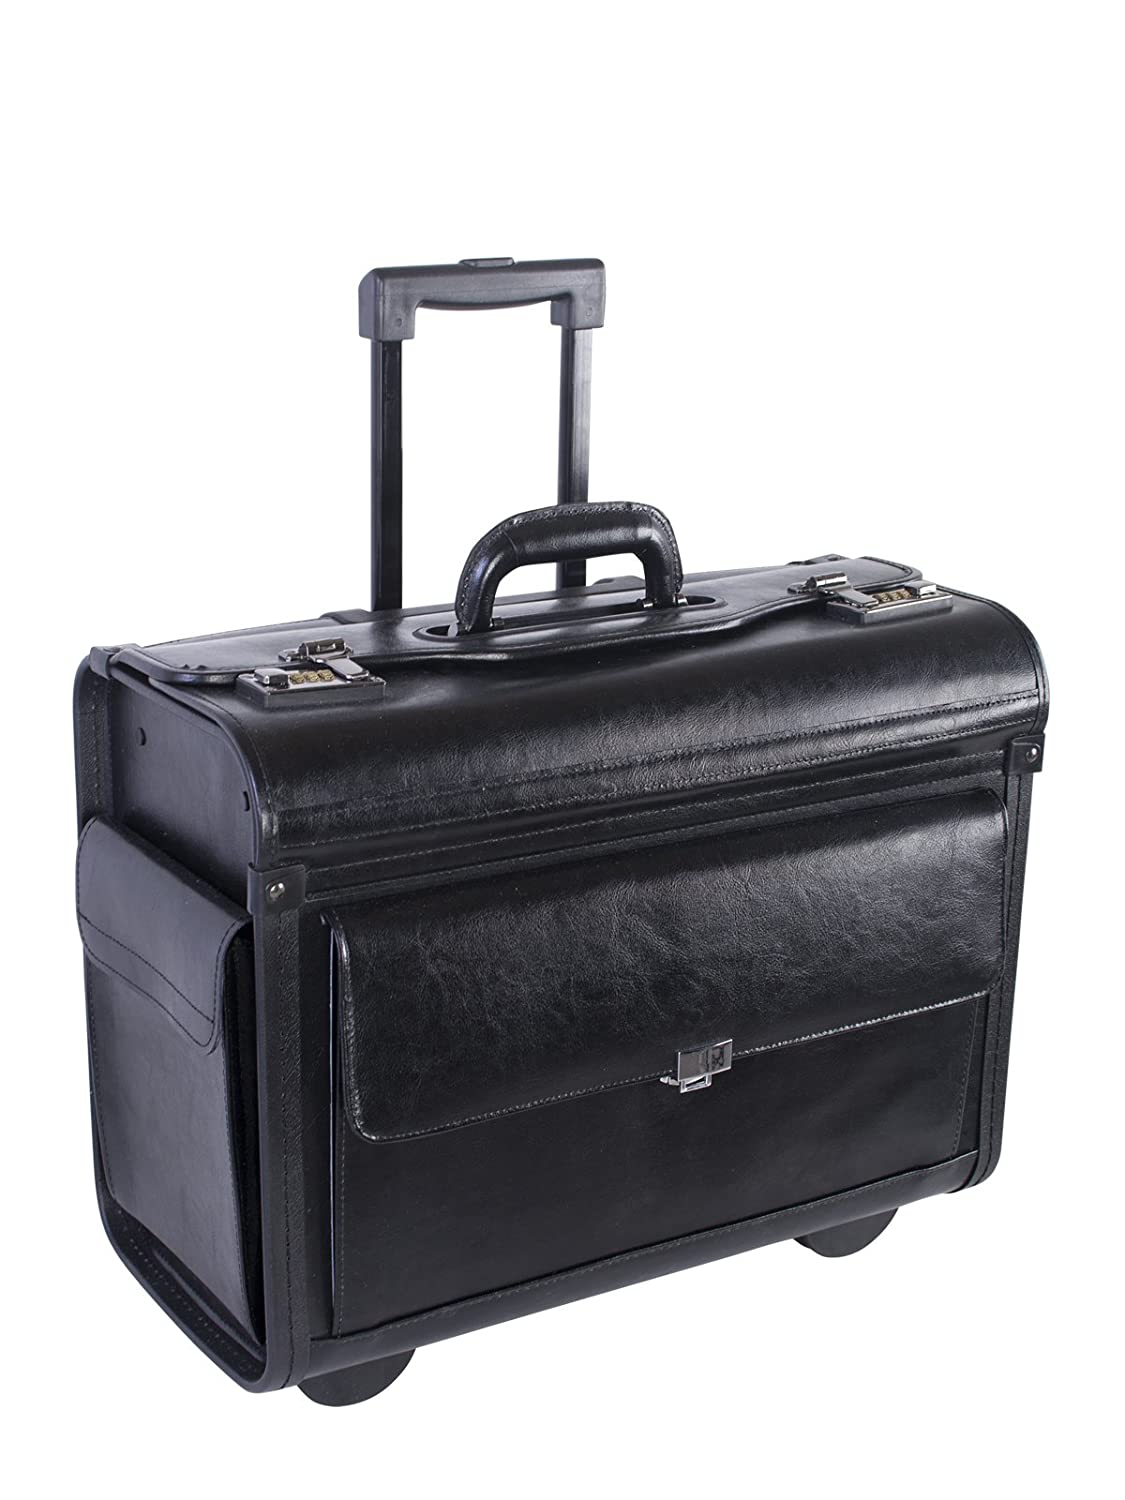 NEXTECH 15.6 Genuine Colombian Leather Wheeled Flapover Briefcase, Black, International Carry-On (Model:NT0803 009) TP-HOLIDAY GROUP LIMITED